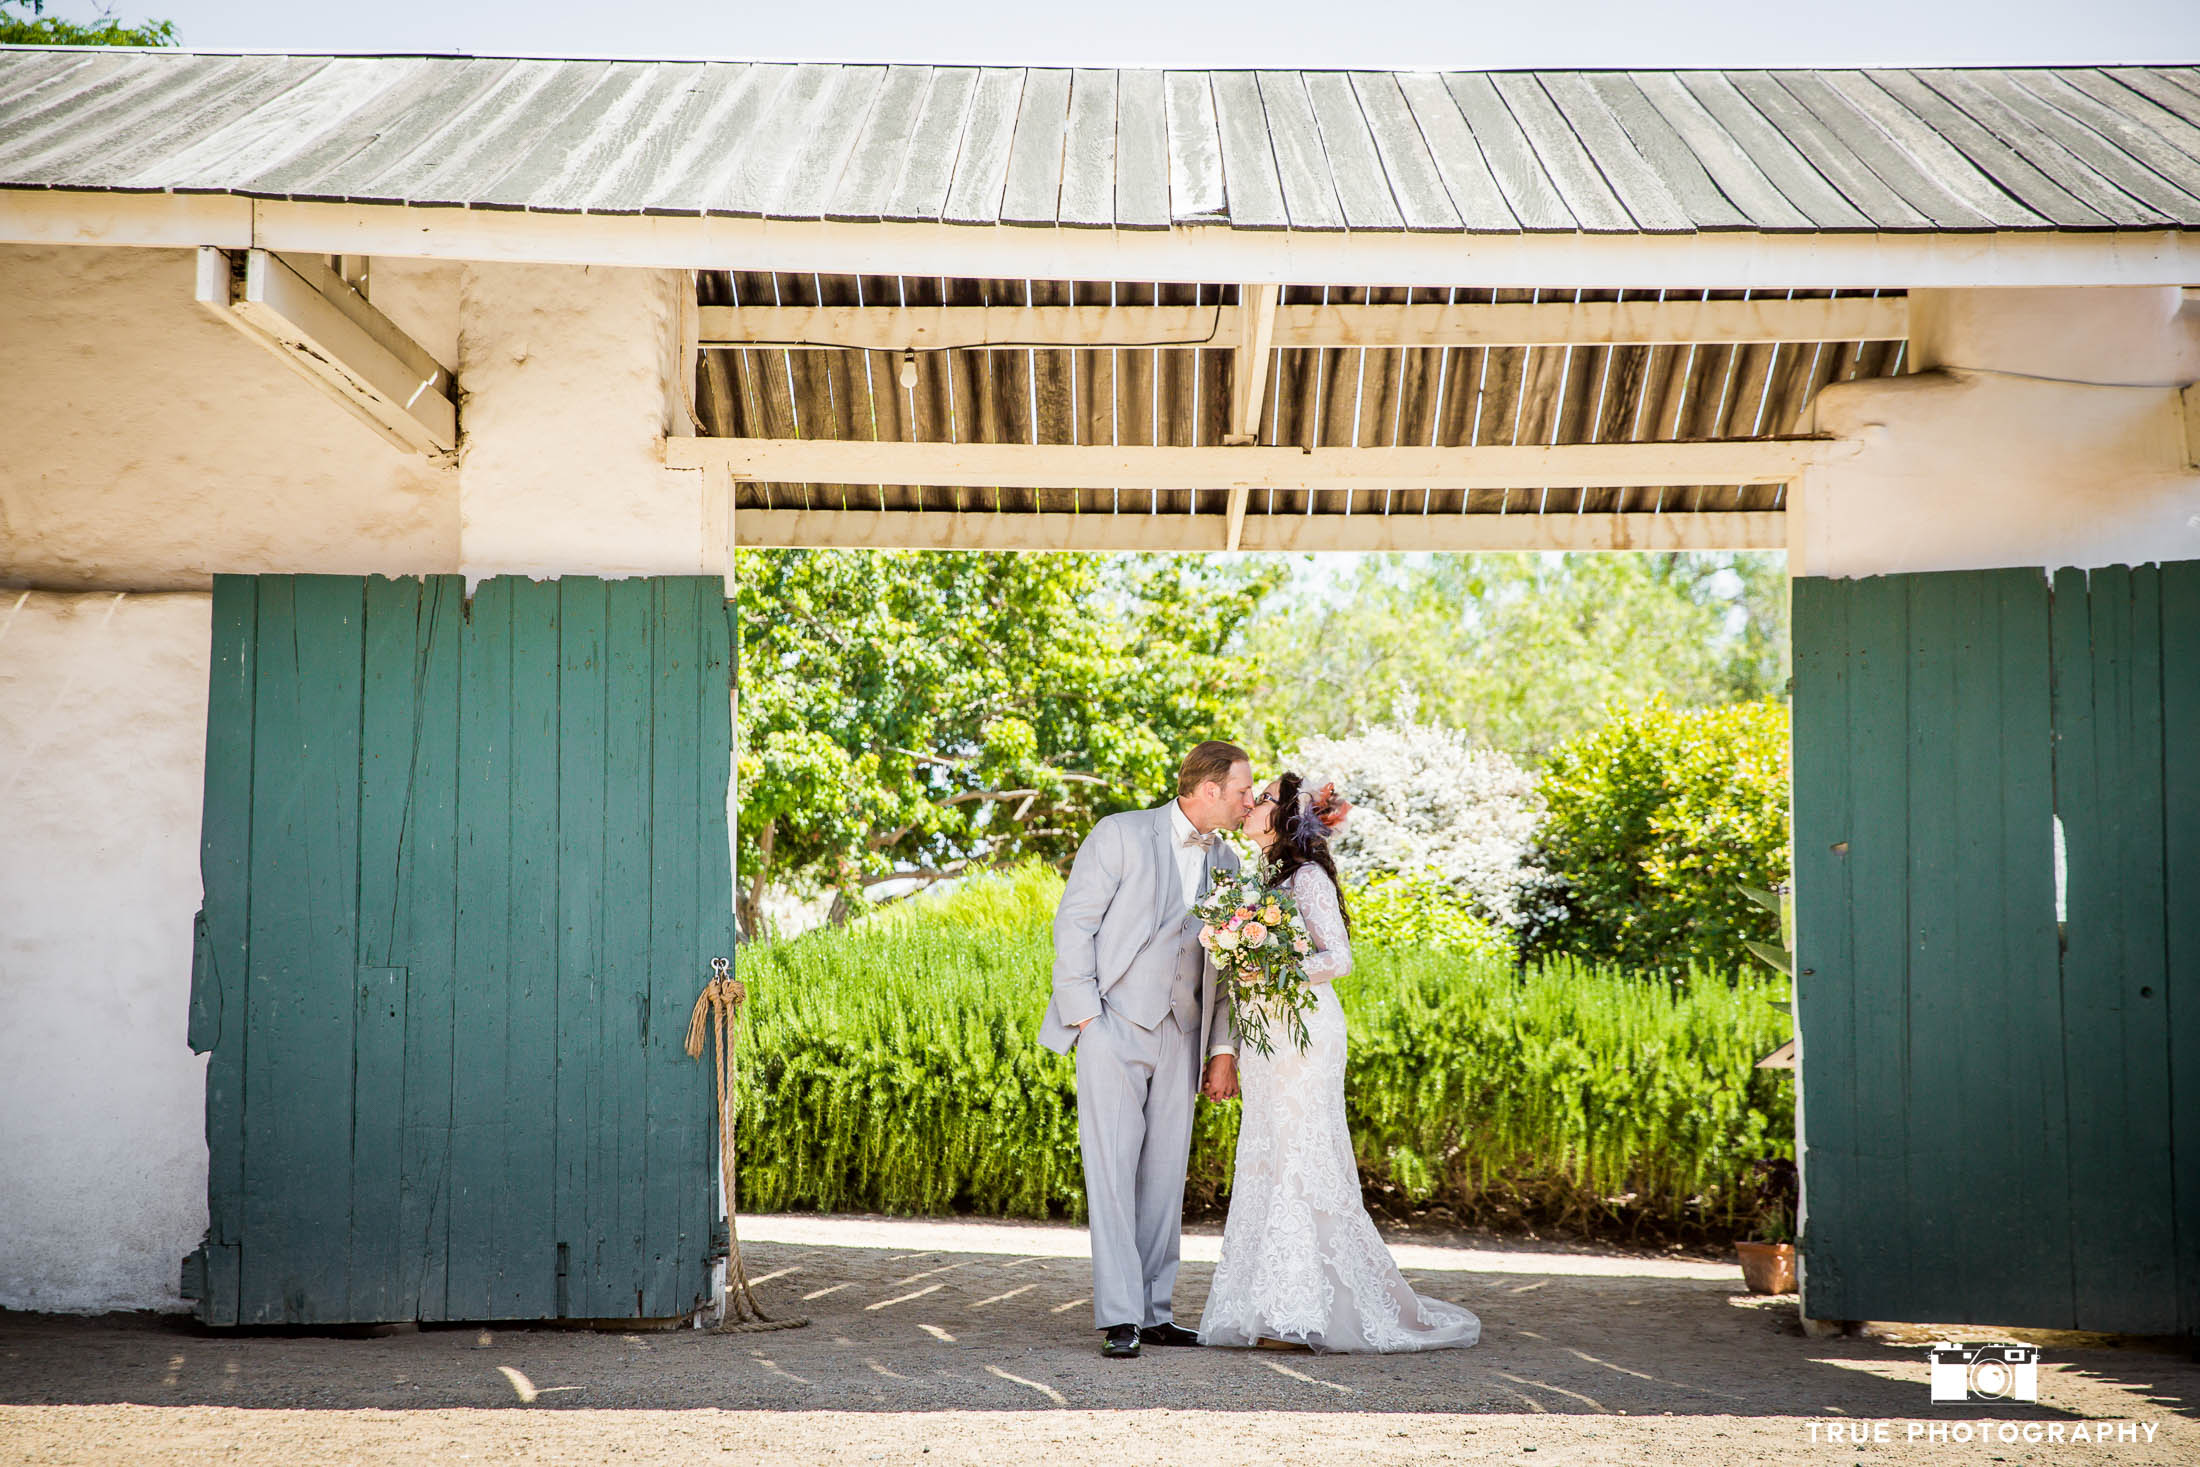 Bride and Groom kiss under Spanish-style Arch with flowers in background